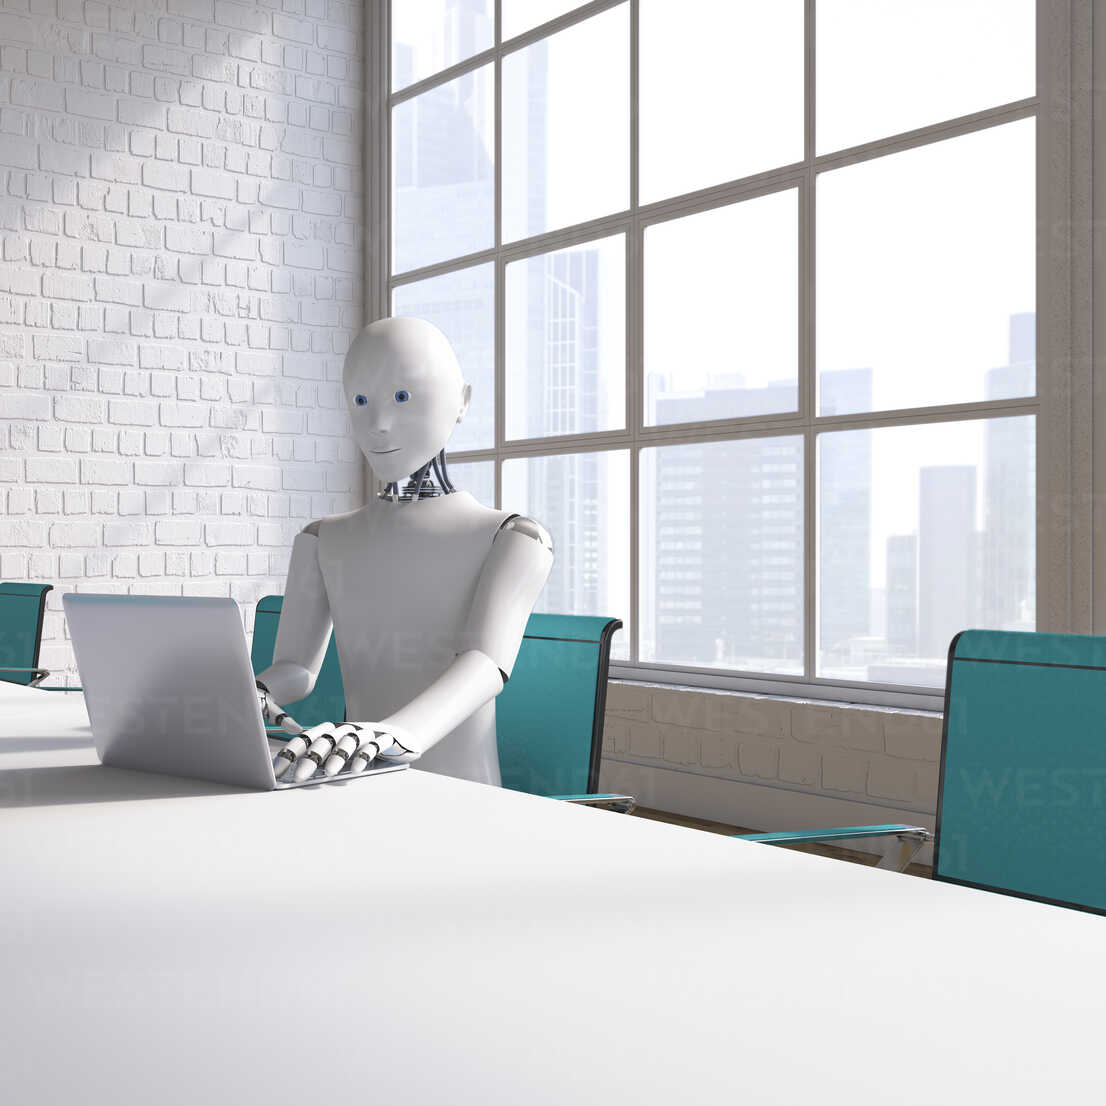 Robot sitting sitting at conference table, using laptop - AHUF00371 - Anna Huber/Westend61